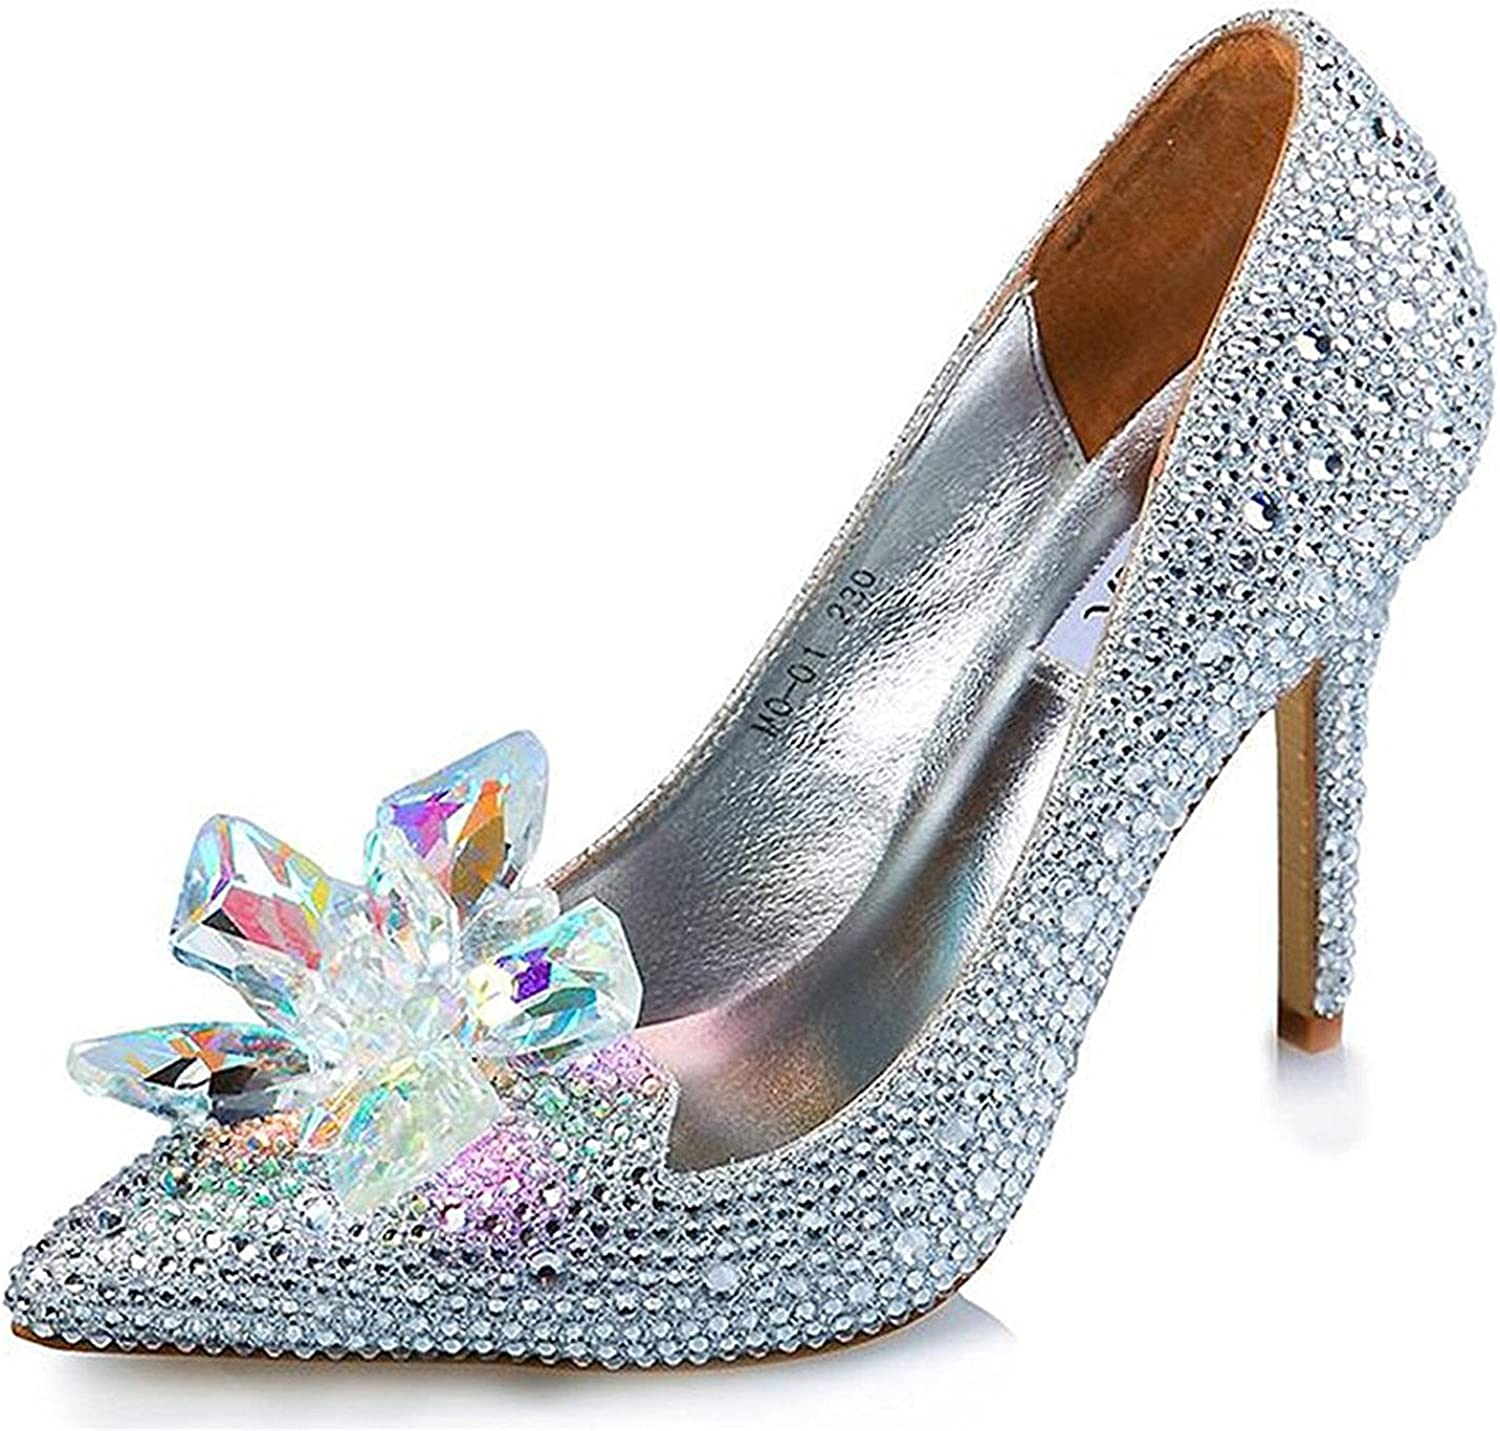 Lisa Gonza Cinderella Princess Crystal shoes Glass Flower Wedding shoes Evening Dress Heels